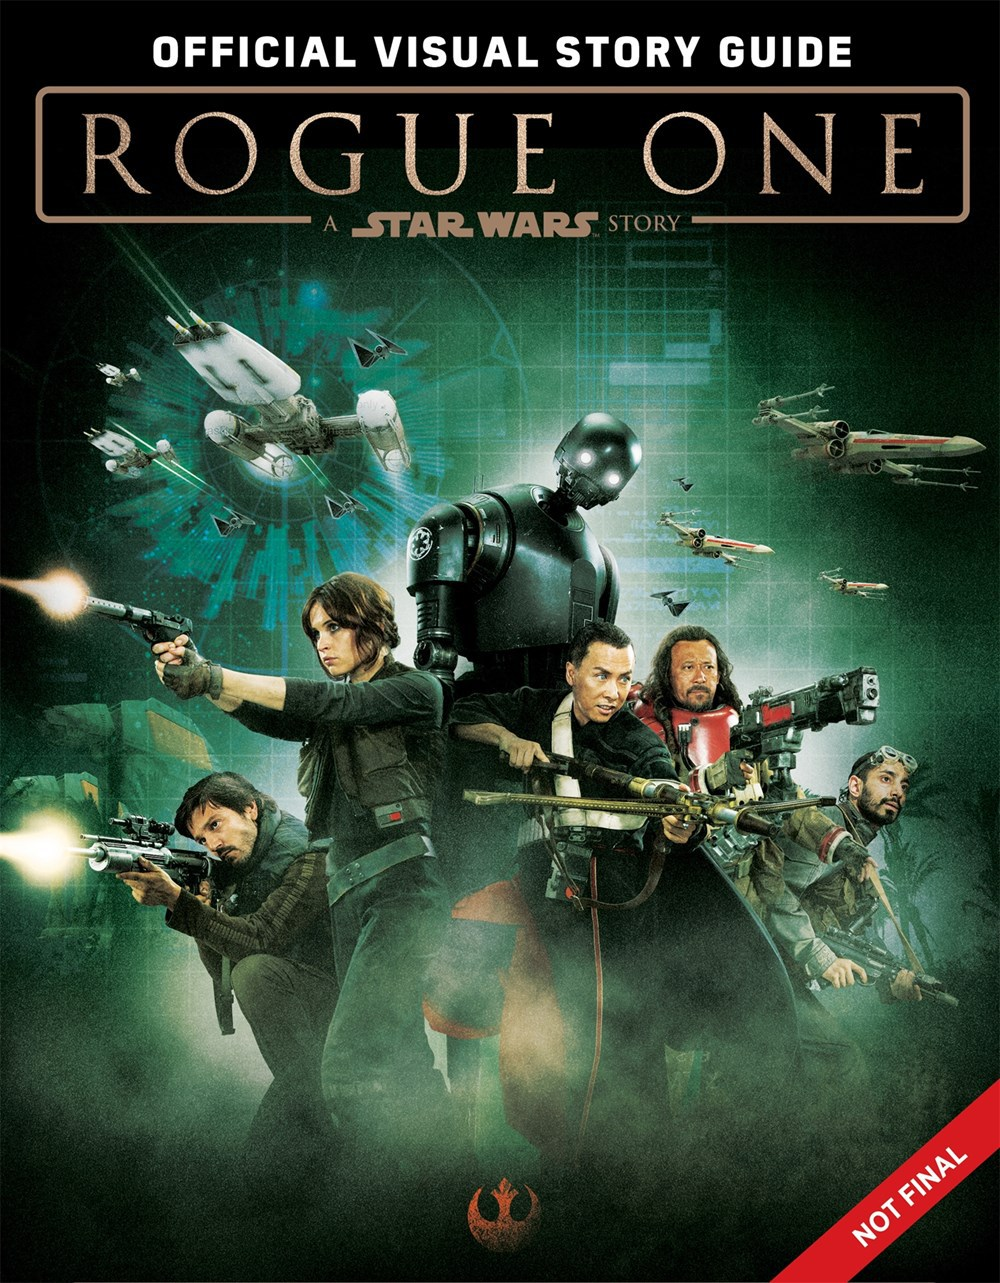 Rogue One | Euro Palace Casino Blog